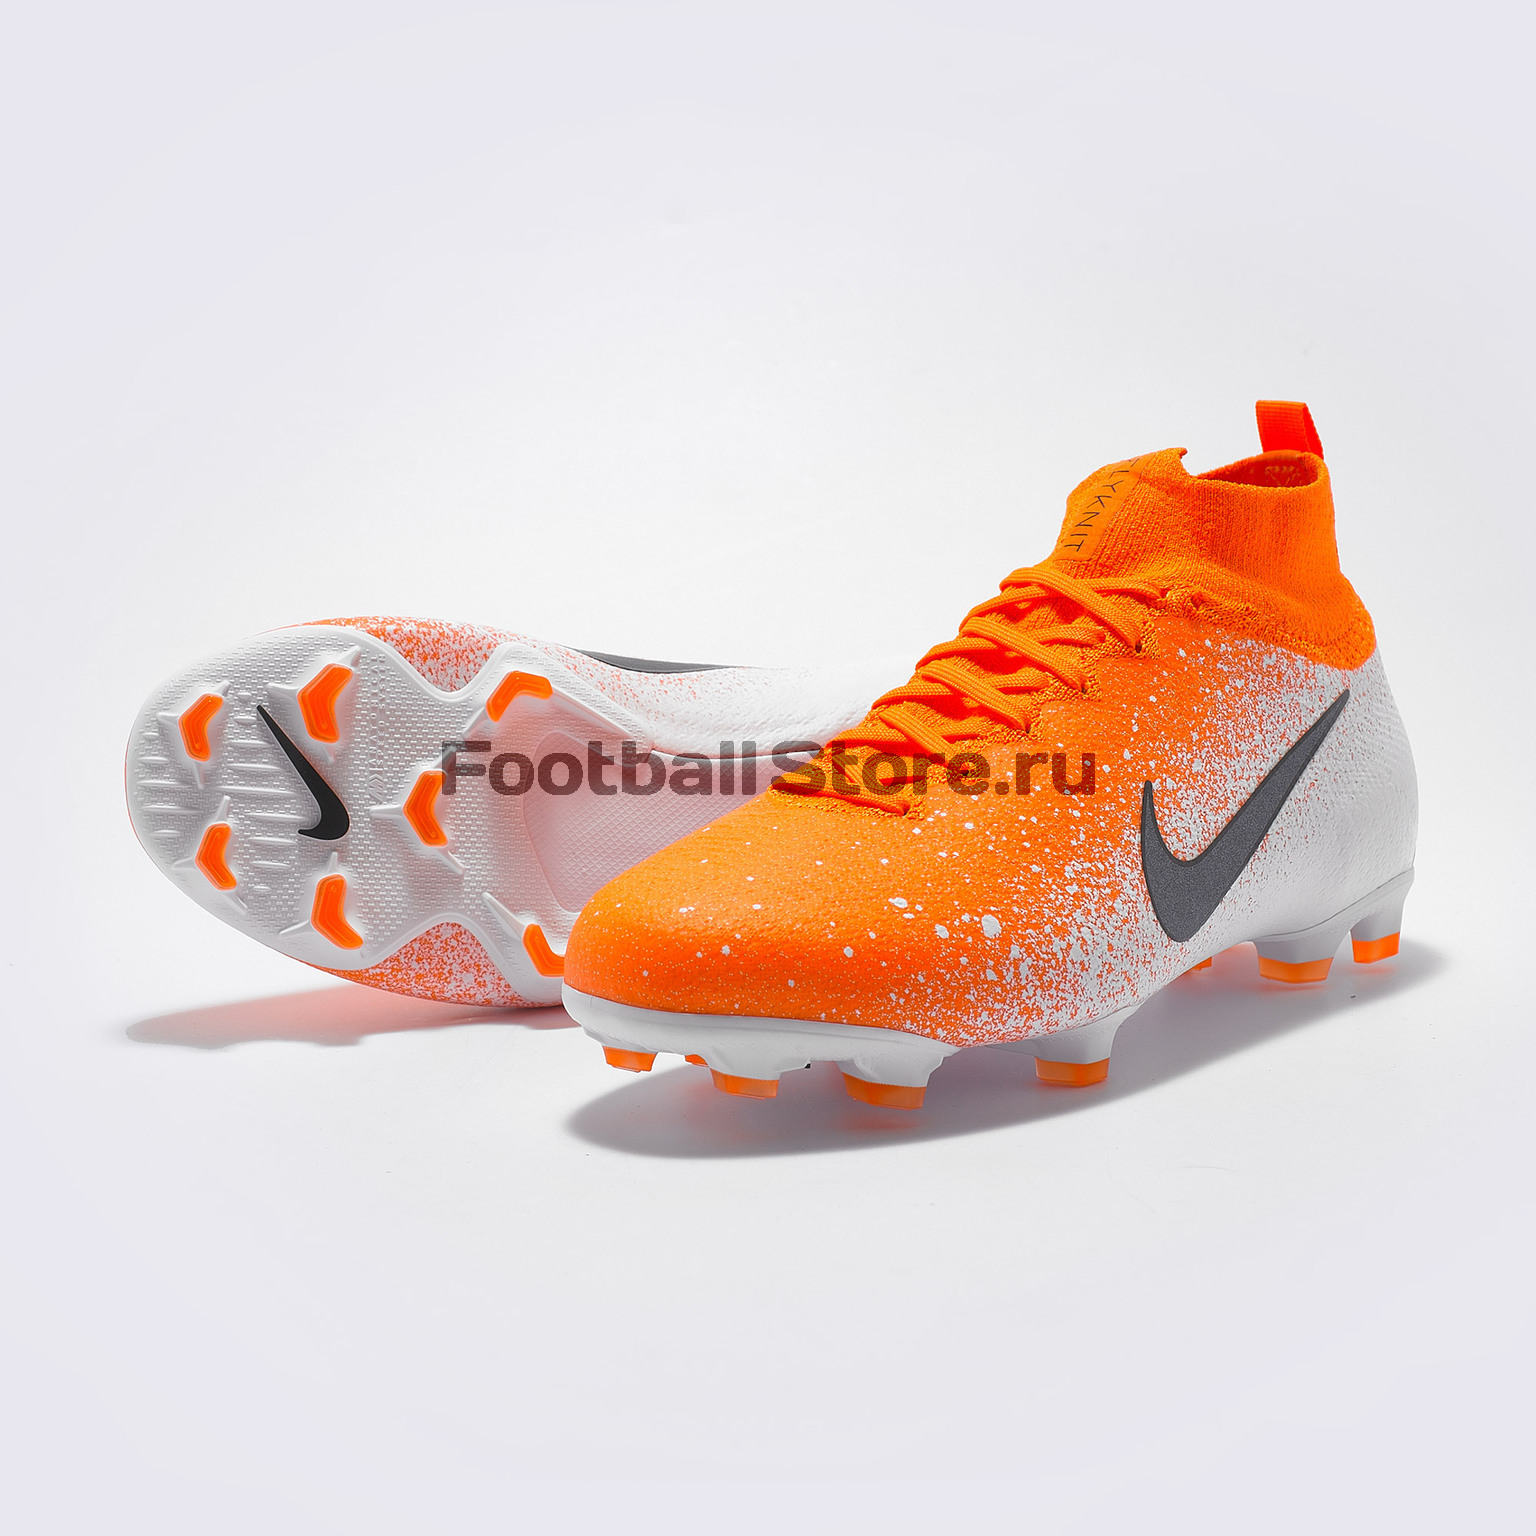 Бутсы детские Nike Superfly 6 Elite FG AH7340-801 бутсы nike superfly 6 elite cr7 fg aj3547 600